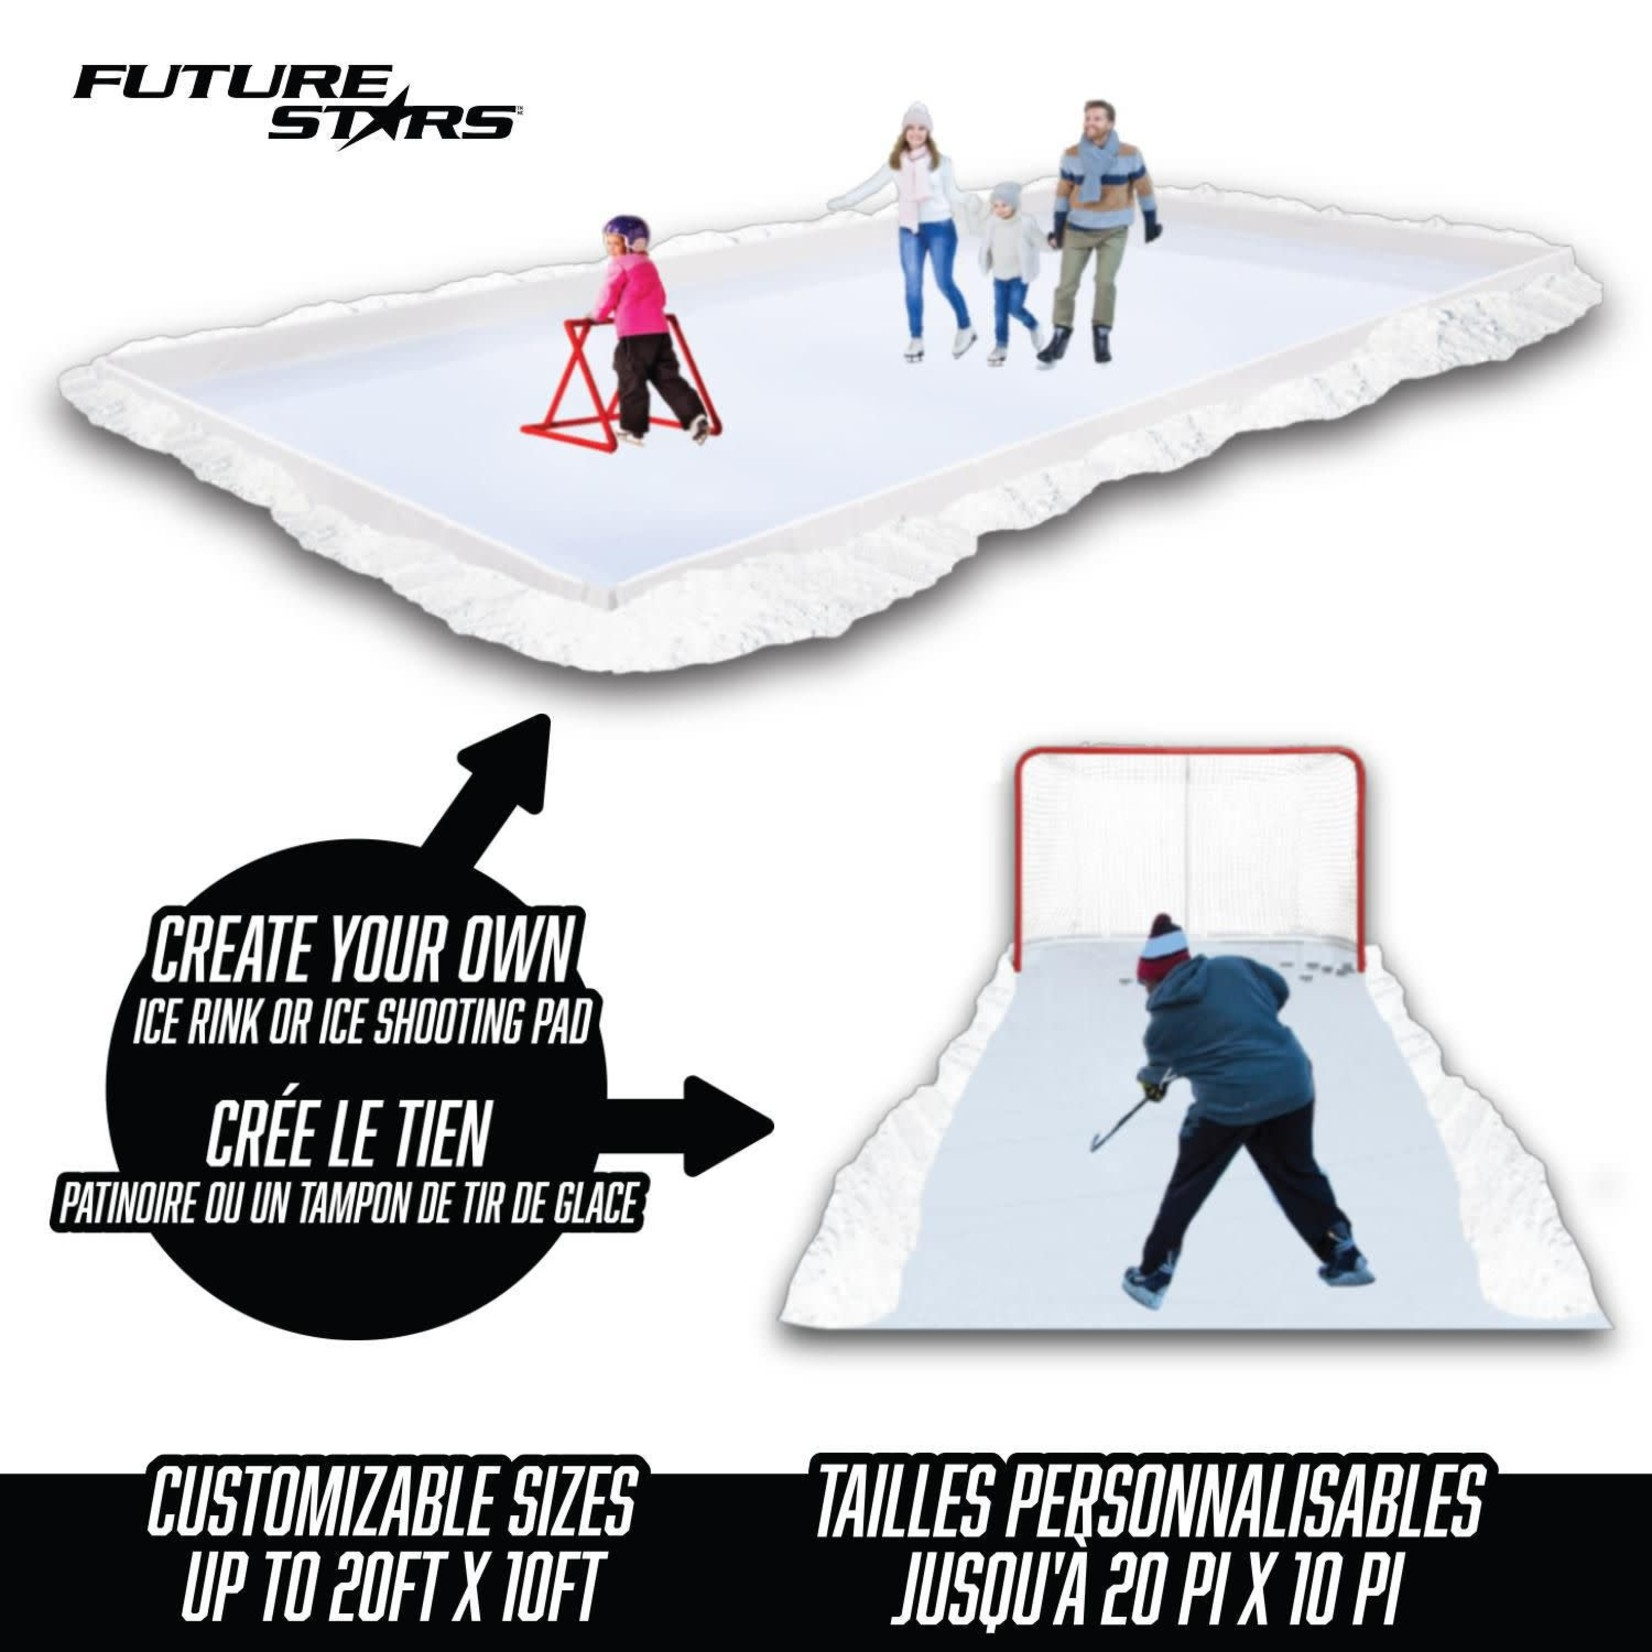 RINK IN A BOX - UP TO 20' X 10'